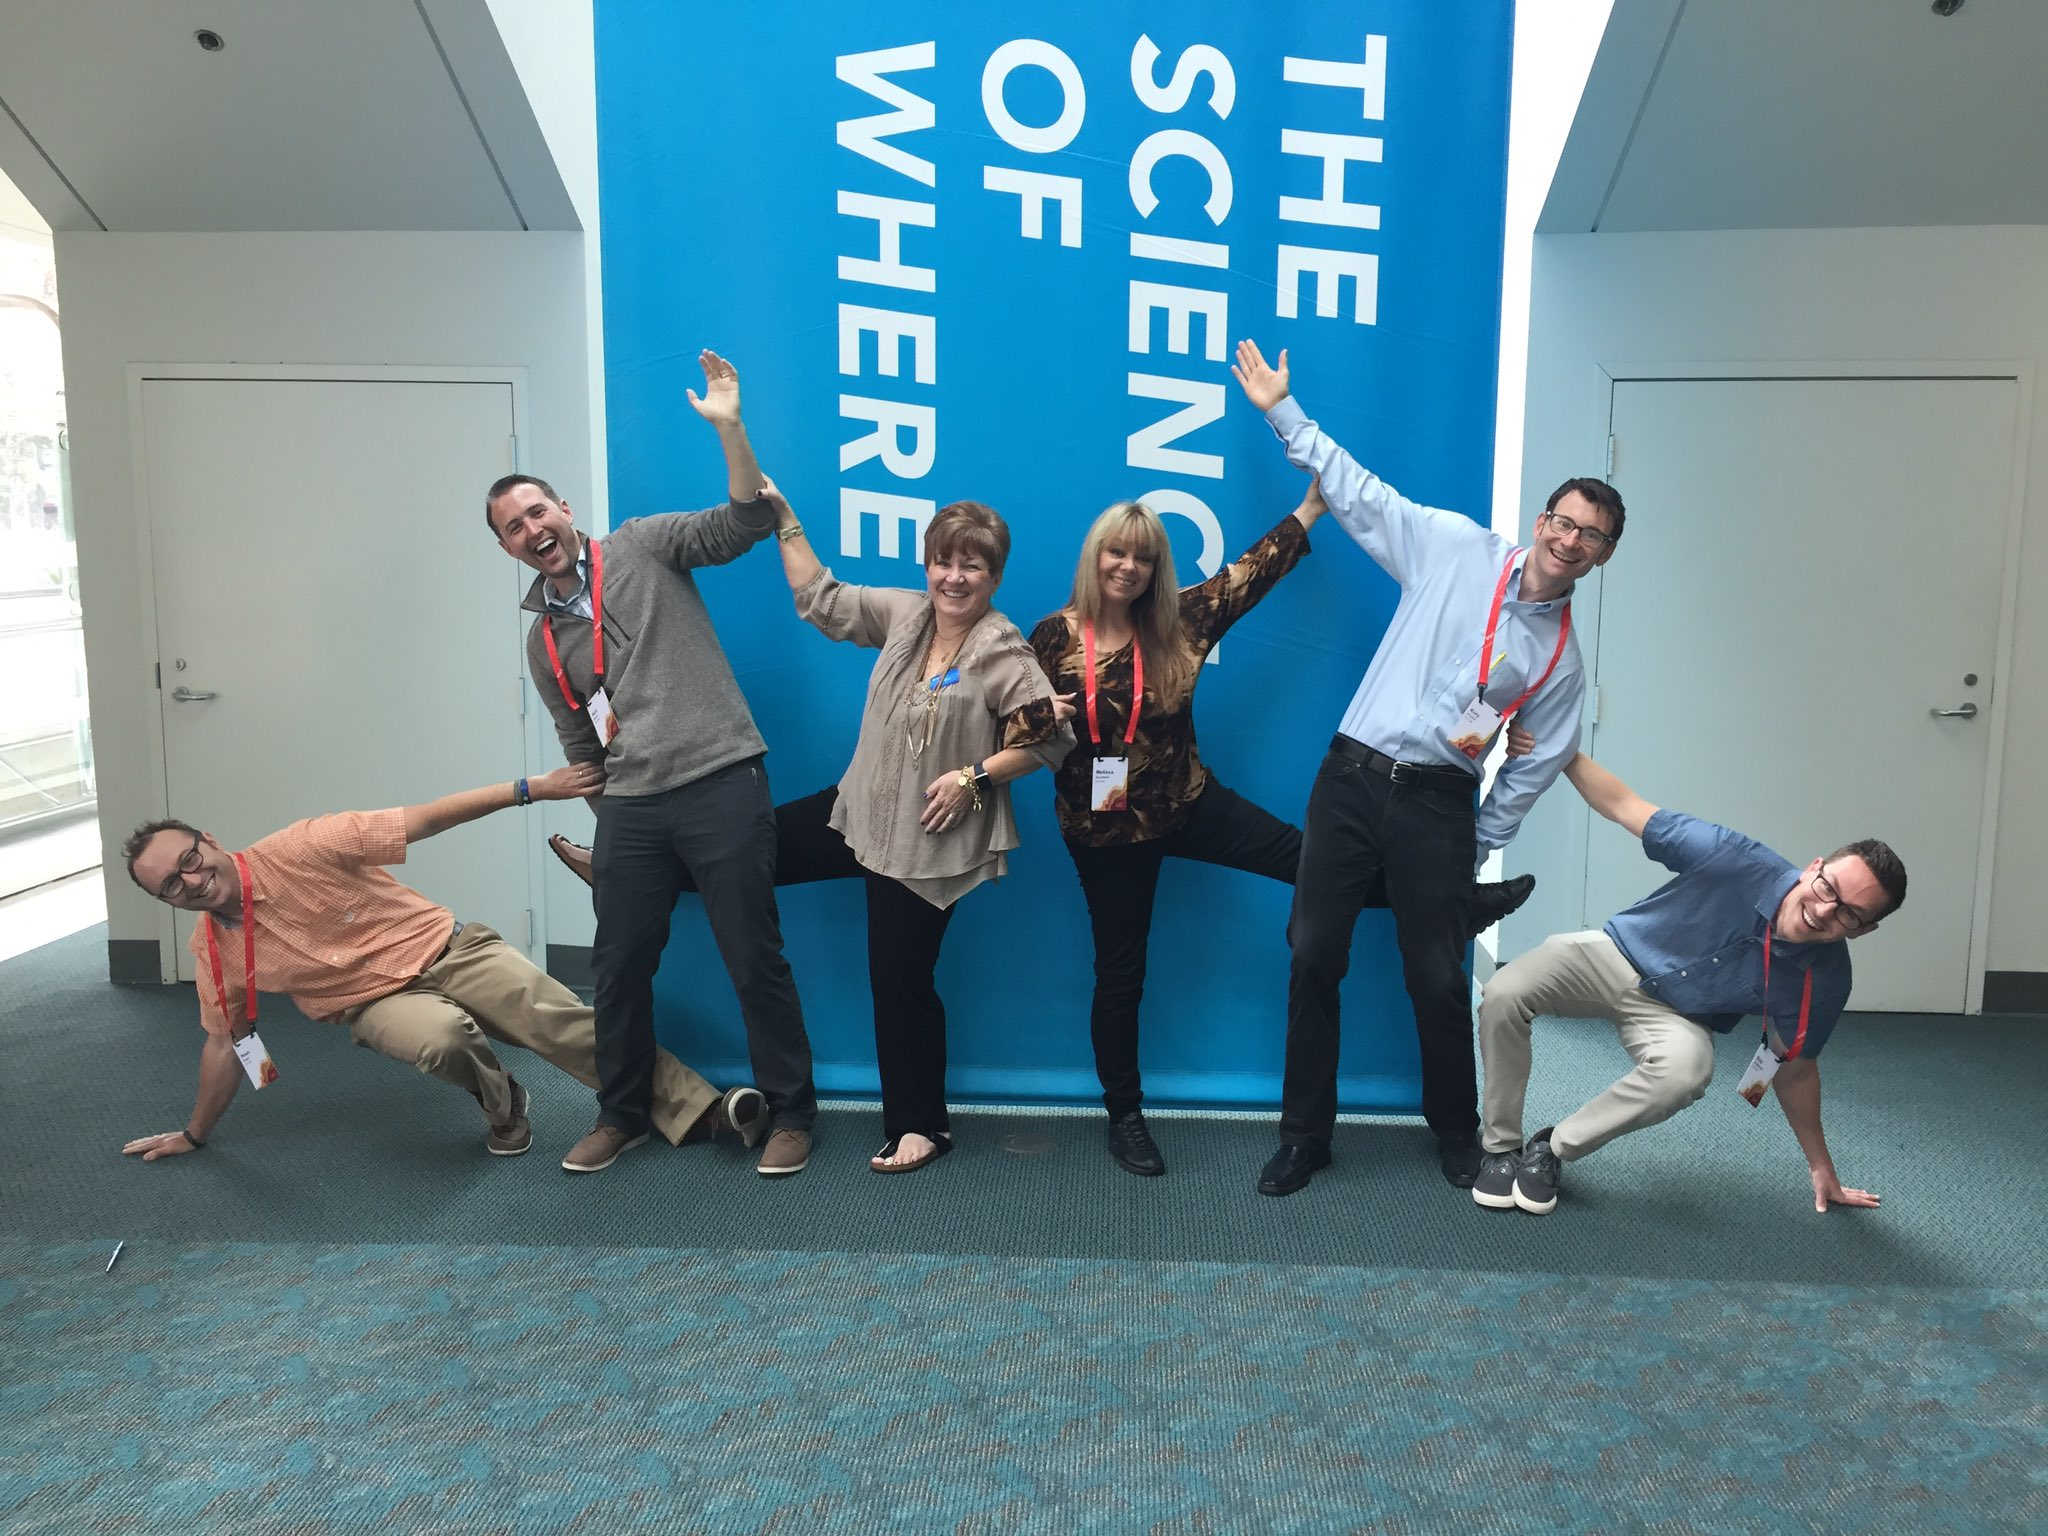 Showing our zany side @deepseadawn but are we #DoingItWright tho? @EsriUC #EsriUC #TheScienceofWhere #OldSchoolAssistants https://t.co/i5FwKJHQVk